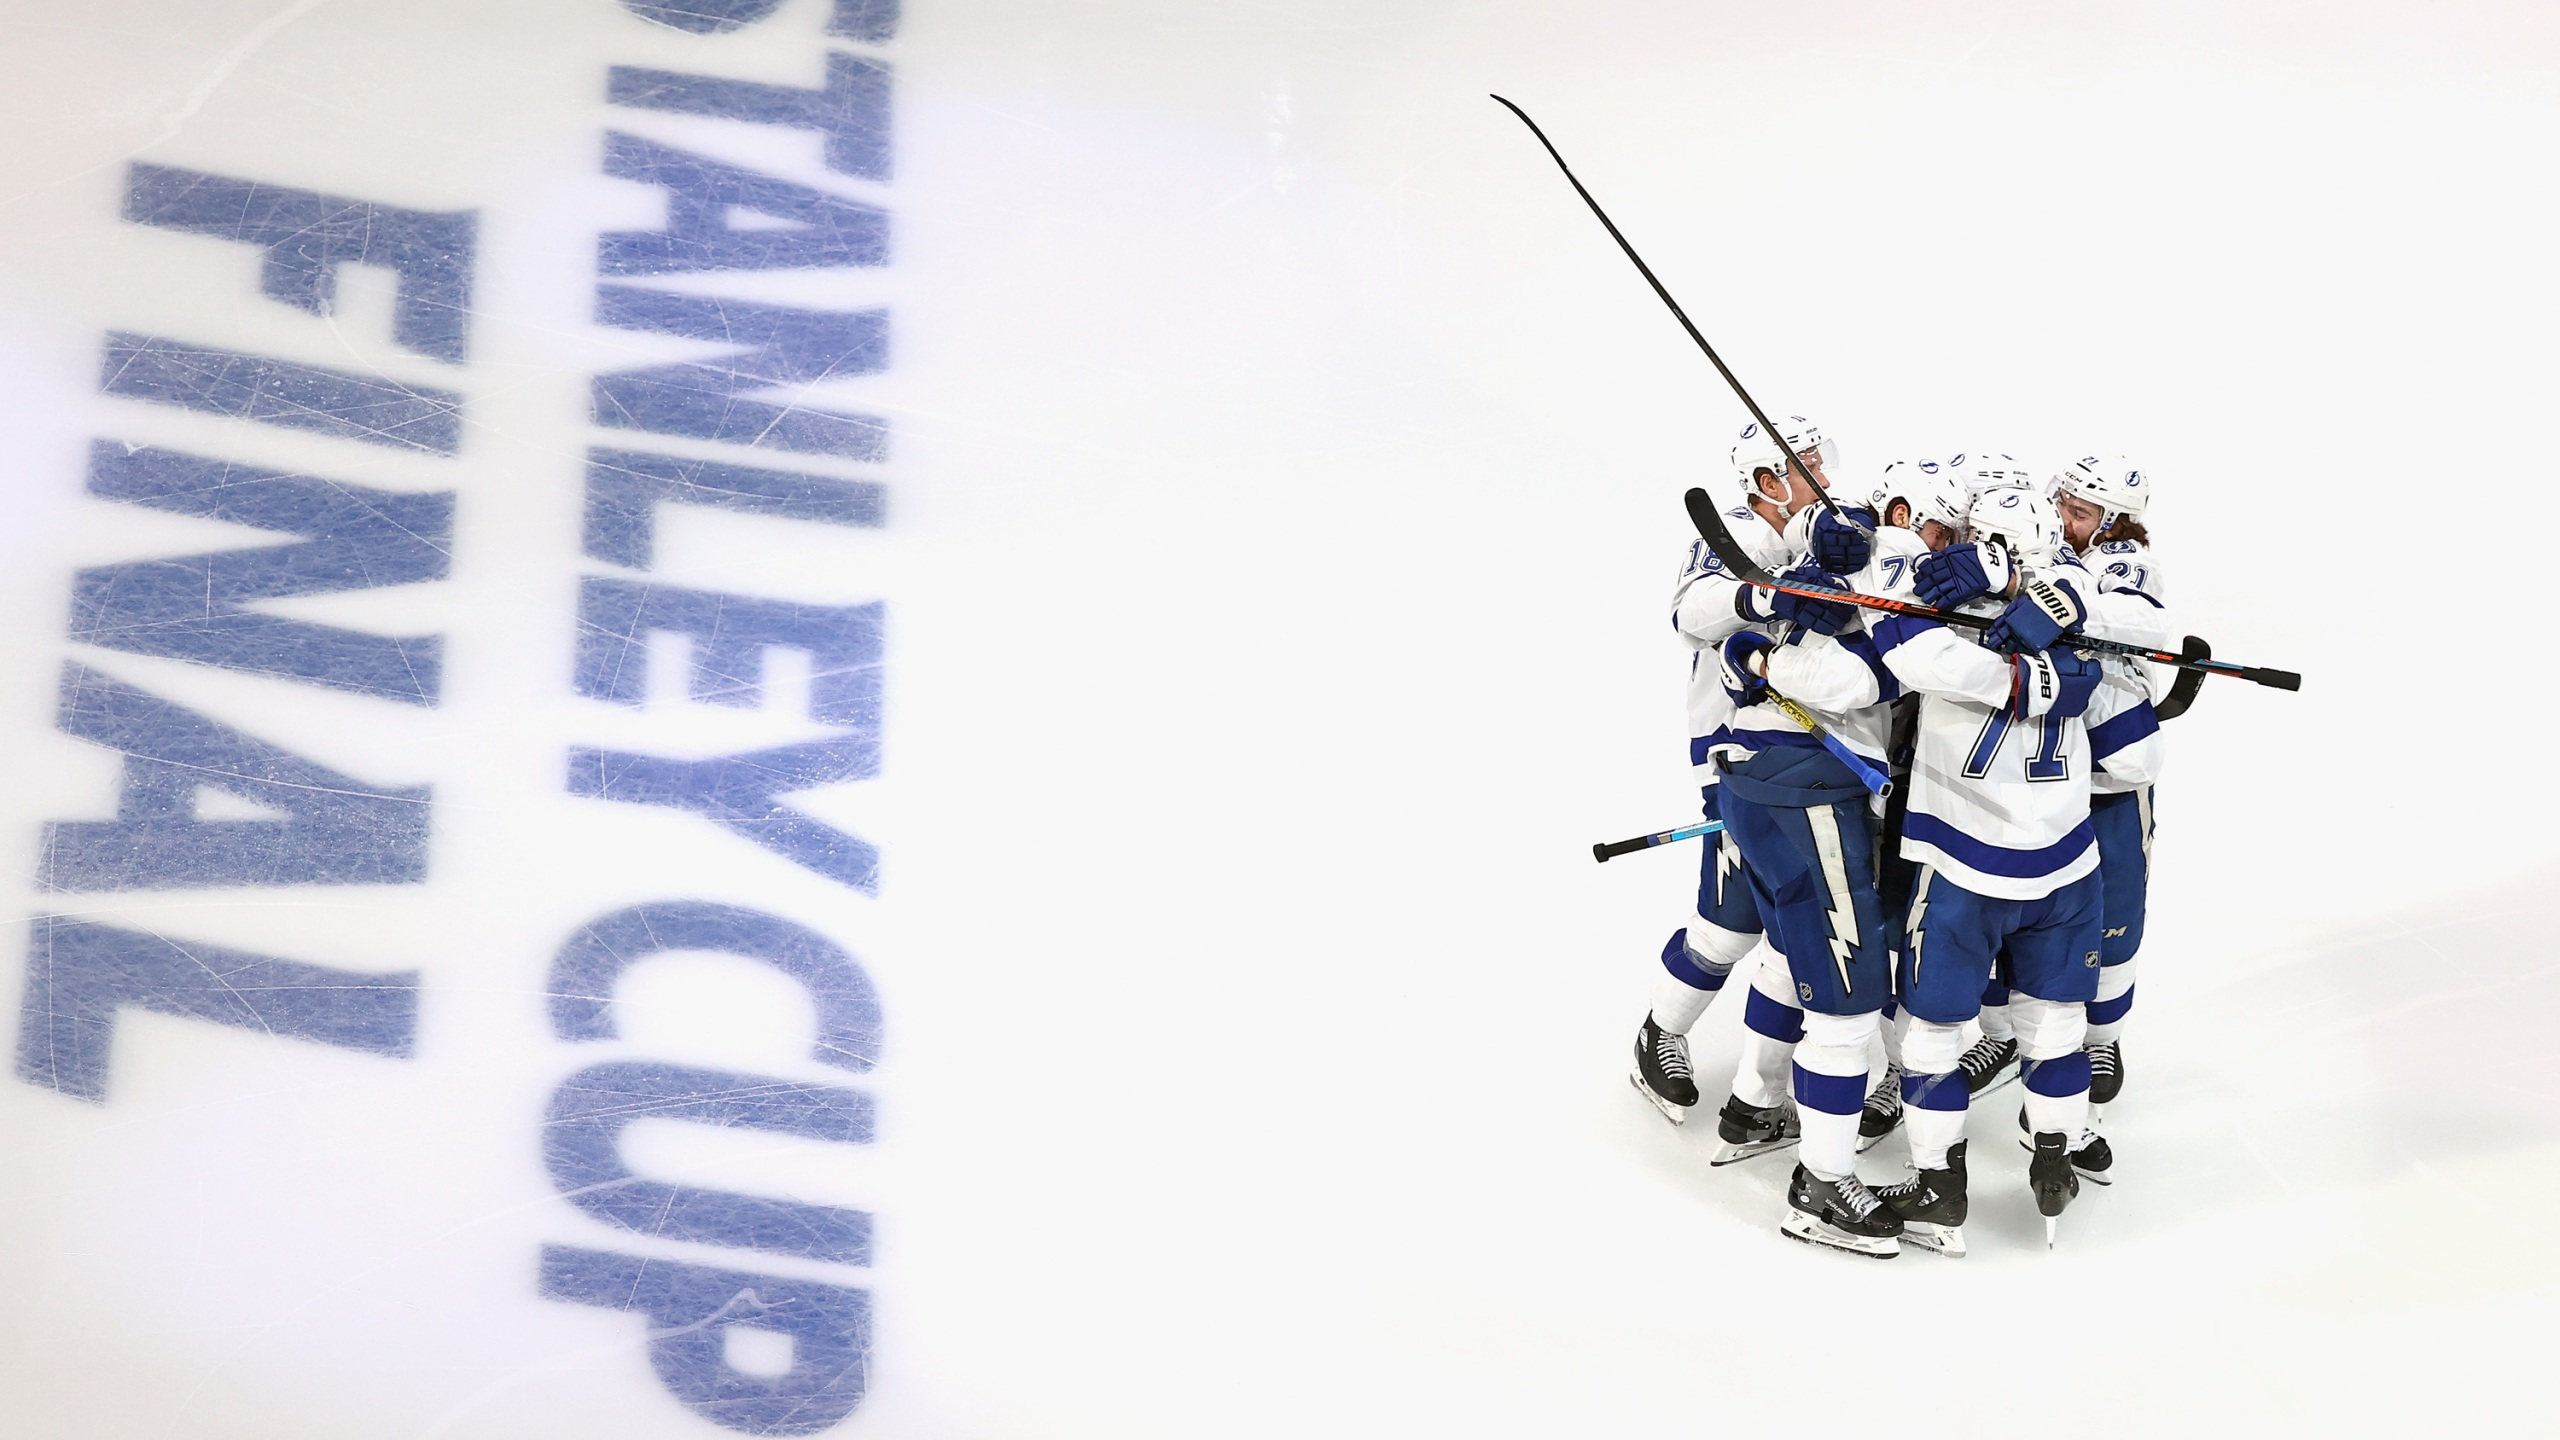 The Tampa Bay Lightning celebrate a goal against the Dallas Stars in Game Three of the 2020 NHL Stanley Cup Final at Rogers Place on September 23, 2020 in Edmonton, Alberta, Canada. (Bruce Bennett/Getty Images)